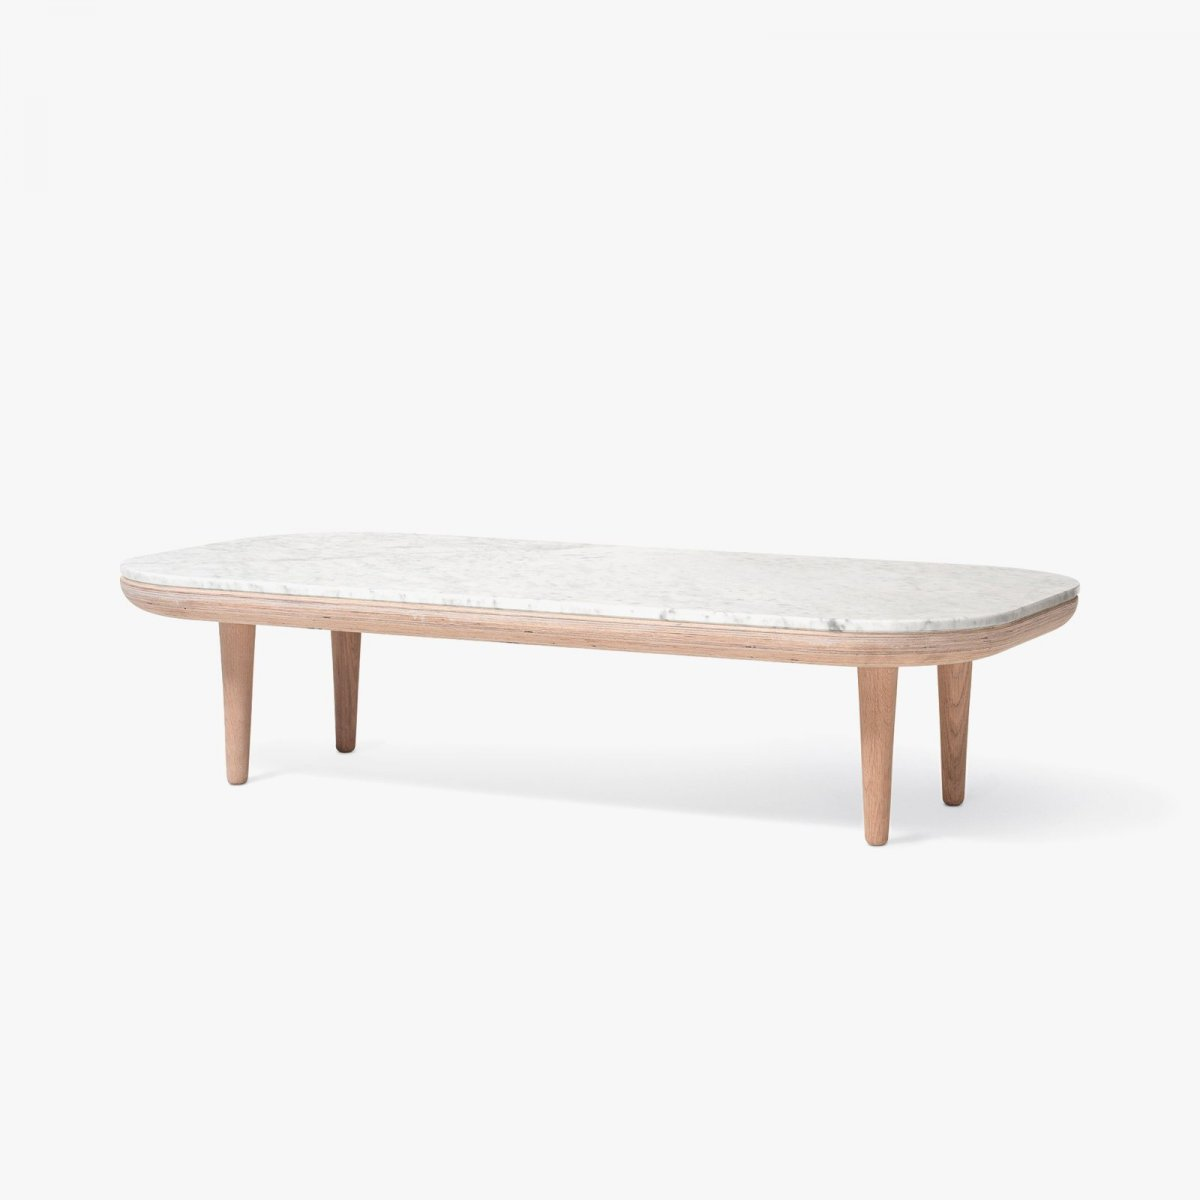 Fly Table SC5, white oiled oak frame with honed Bianco Carrara marble top.